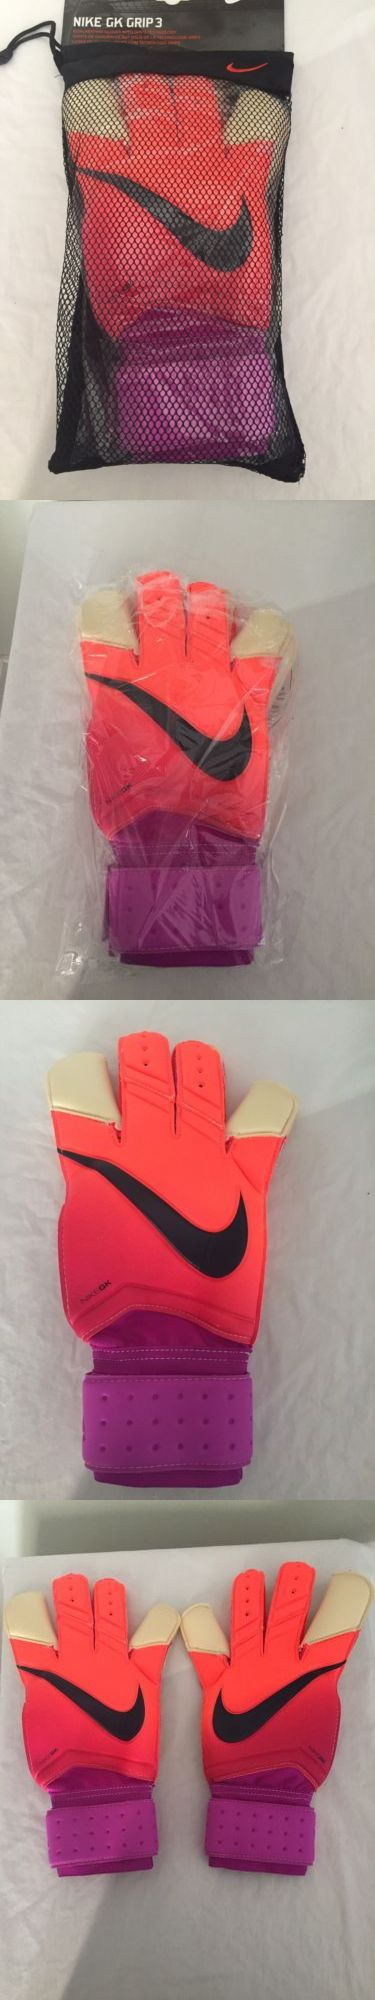 Gloves 57277: Adult Size 11 Nike Gk Grip 3 Goal Keeper Gloves Gs0329-815 -> BUY IT NOW ONLY: $34.99 on eBay!